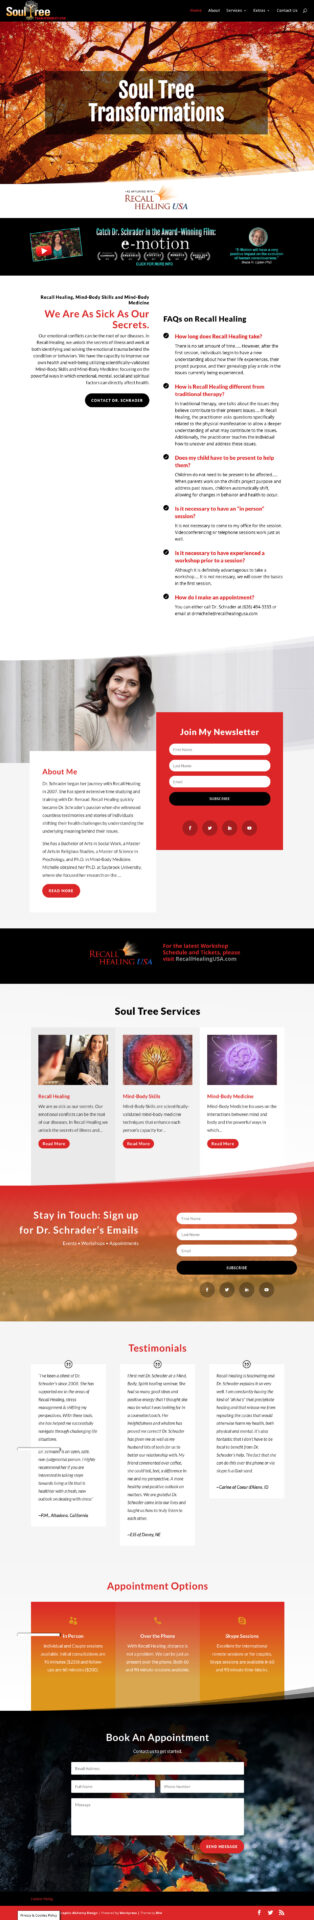 SoulTree Transformations website by GraphicAlchemyOnline.com